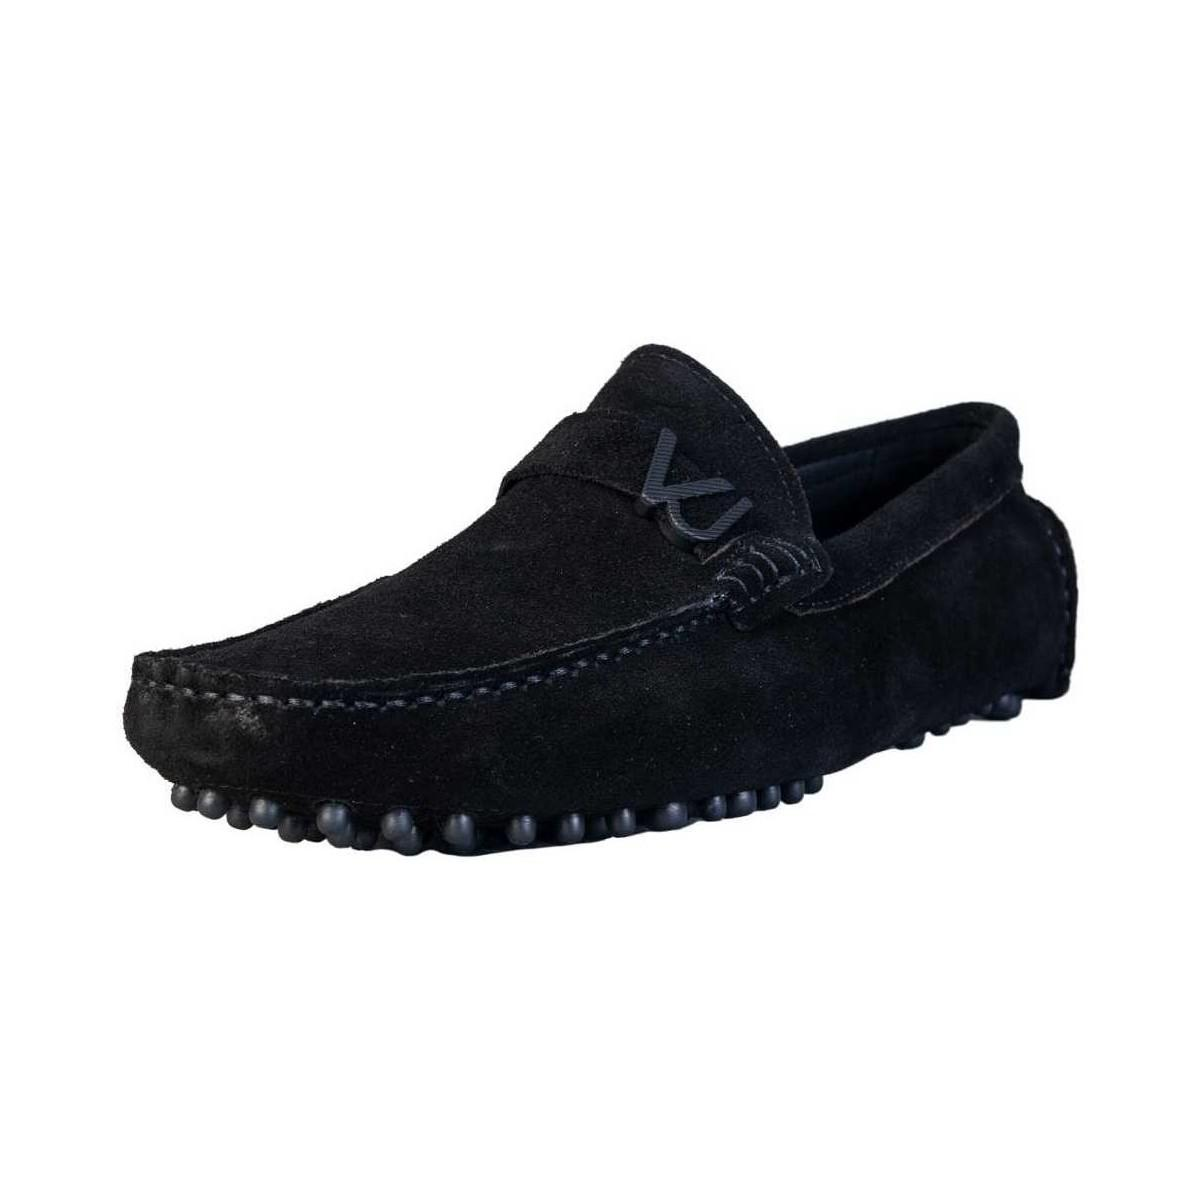 f771fb4bf7 Versace Loafers Shoes Eoyrbsf270073 Men's Loafers / Casual Shoes In ...